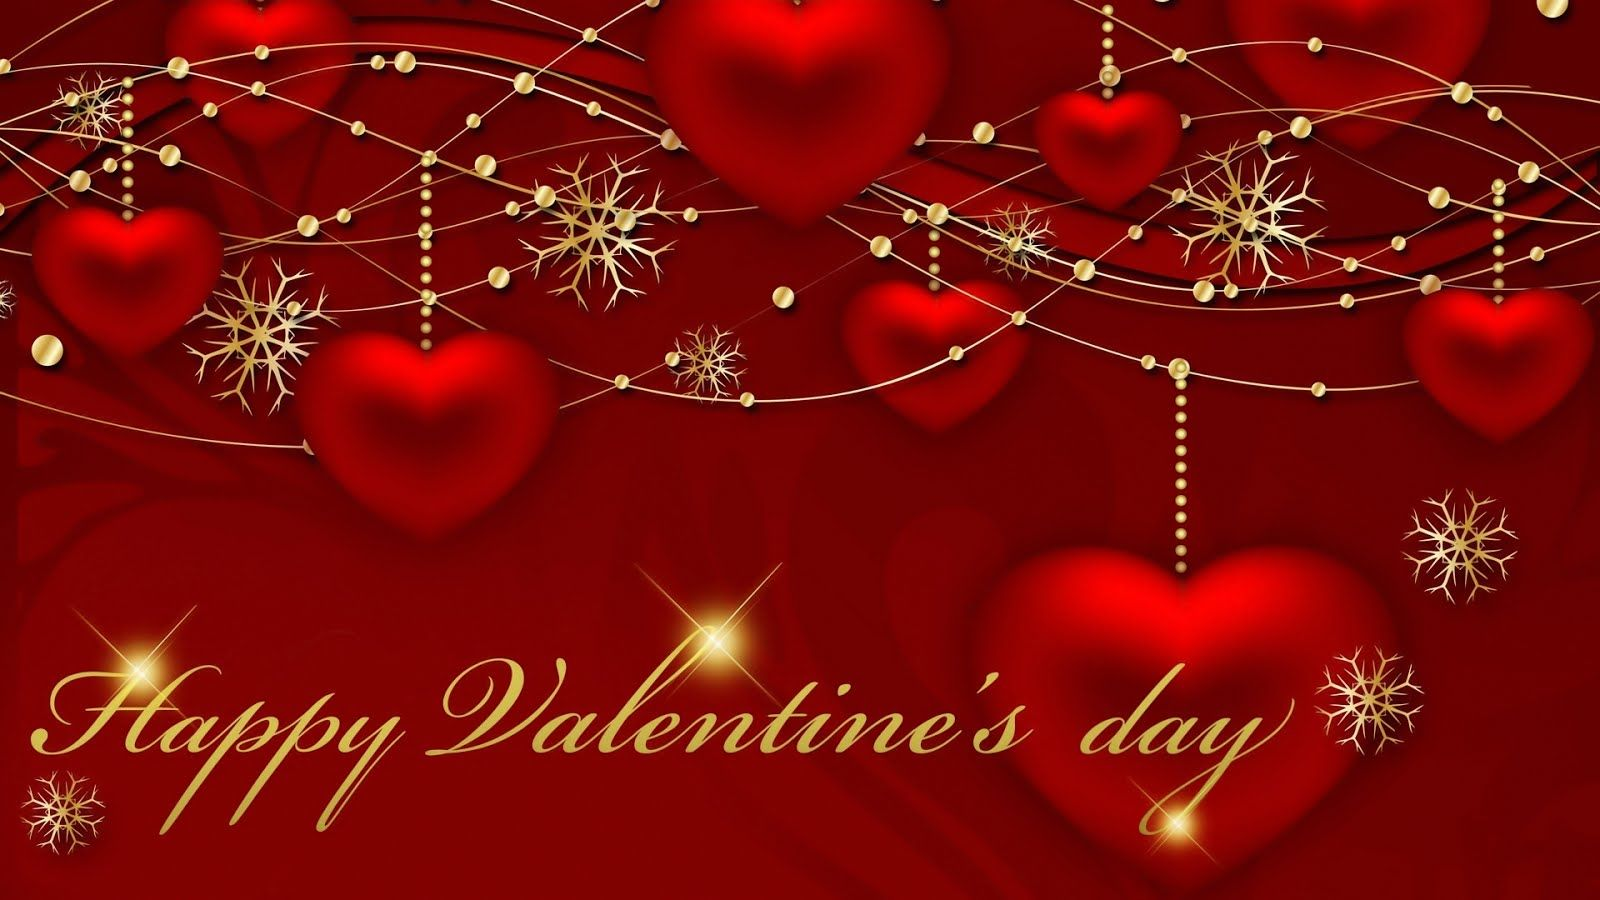 Happy**} Valentines Day 2020 Hd Photos